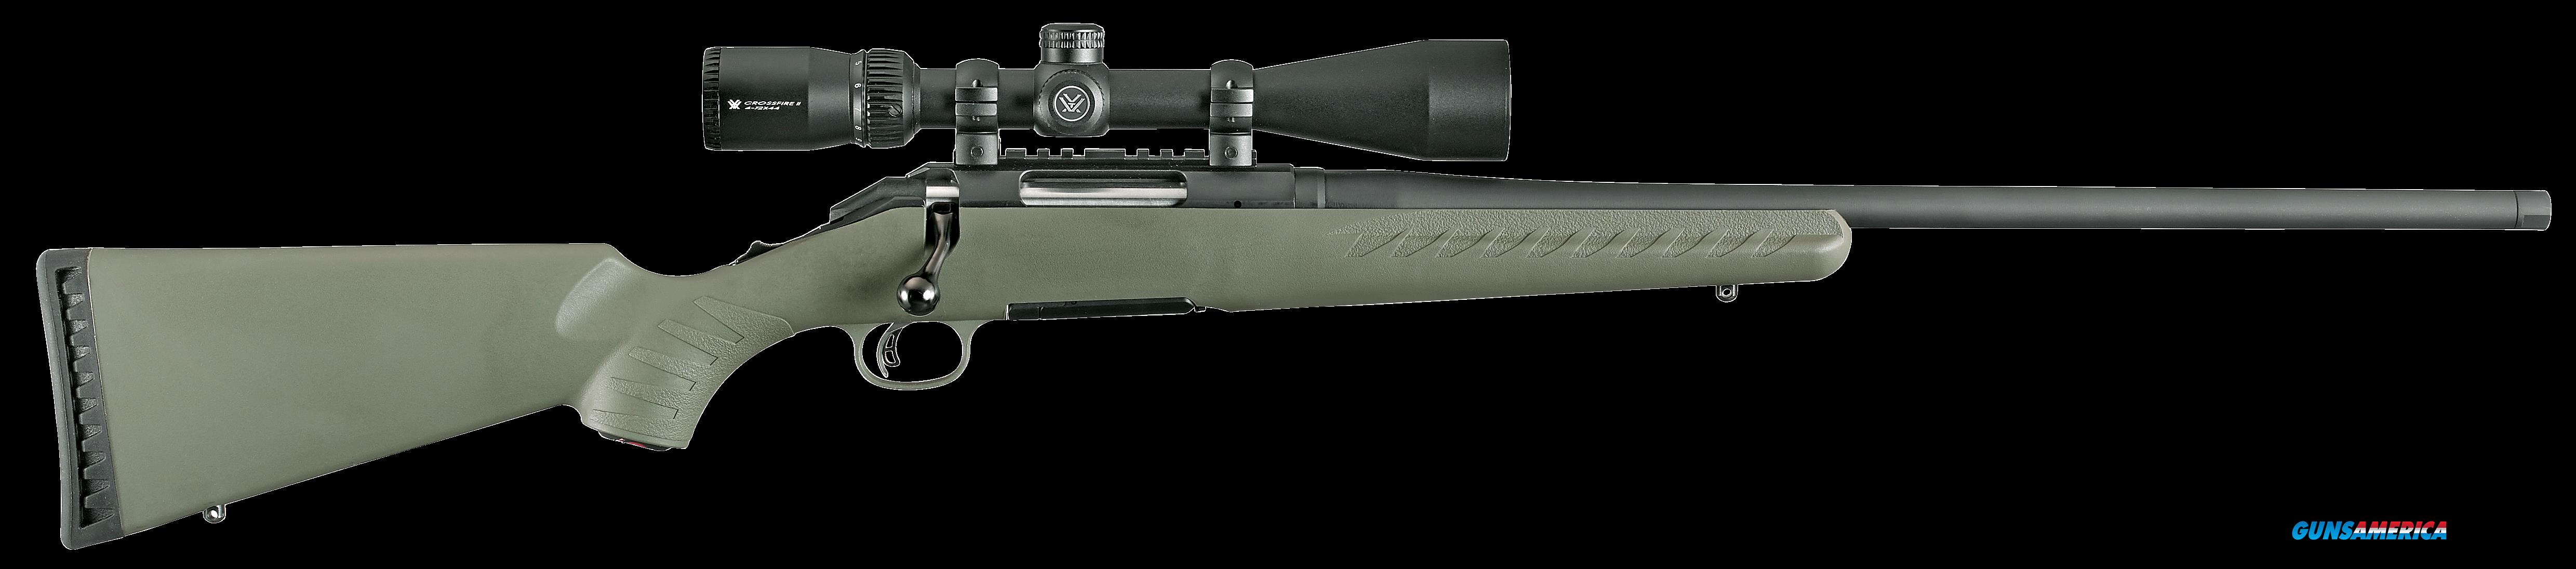 "Ruger 16952 American Predator Bolt 204 Ruger 22"" TB 5+1 Synthetic Moss Green Stk Black  Guns > Rifles > R Misc Rifles"